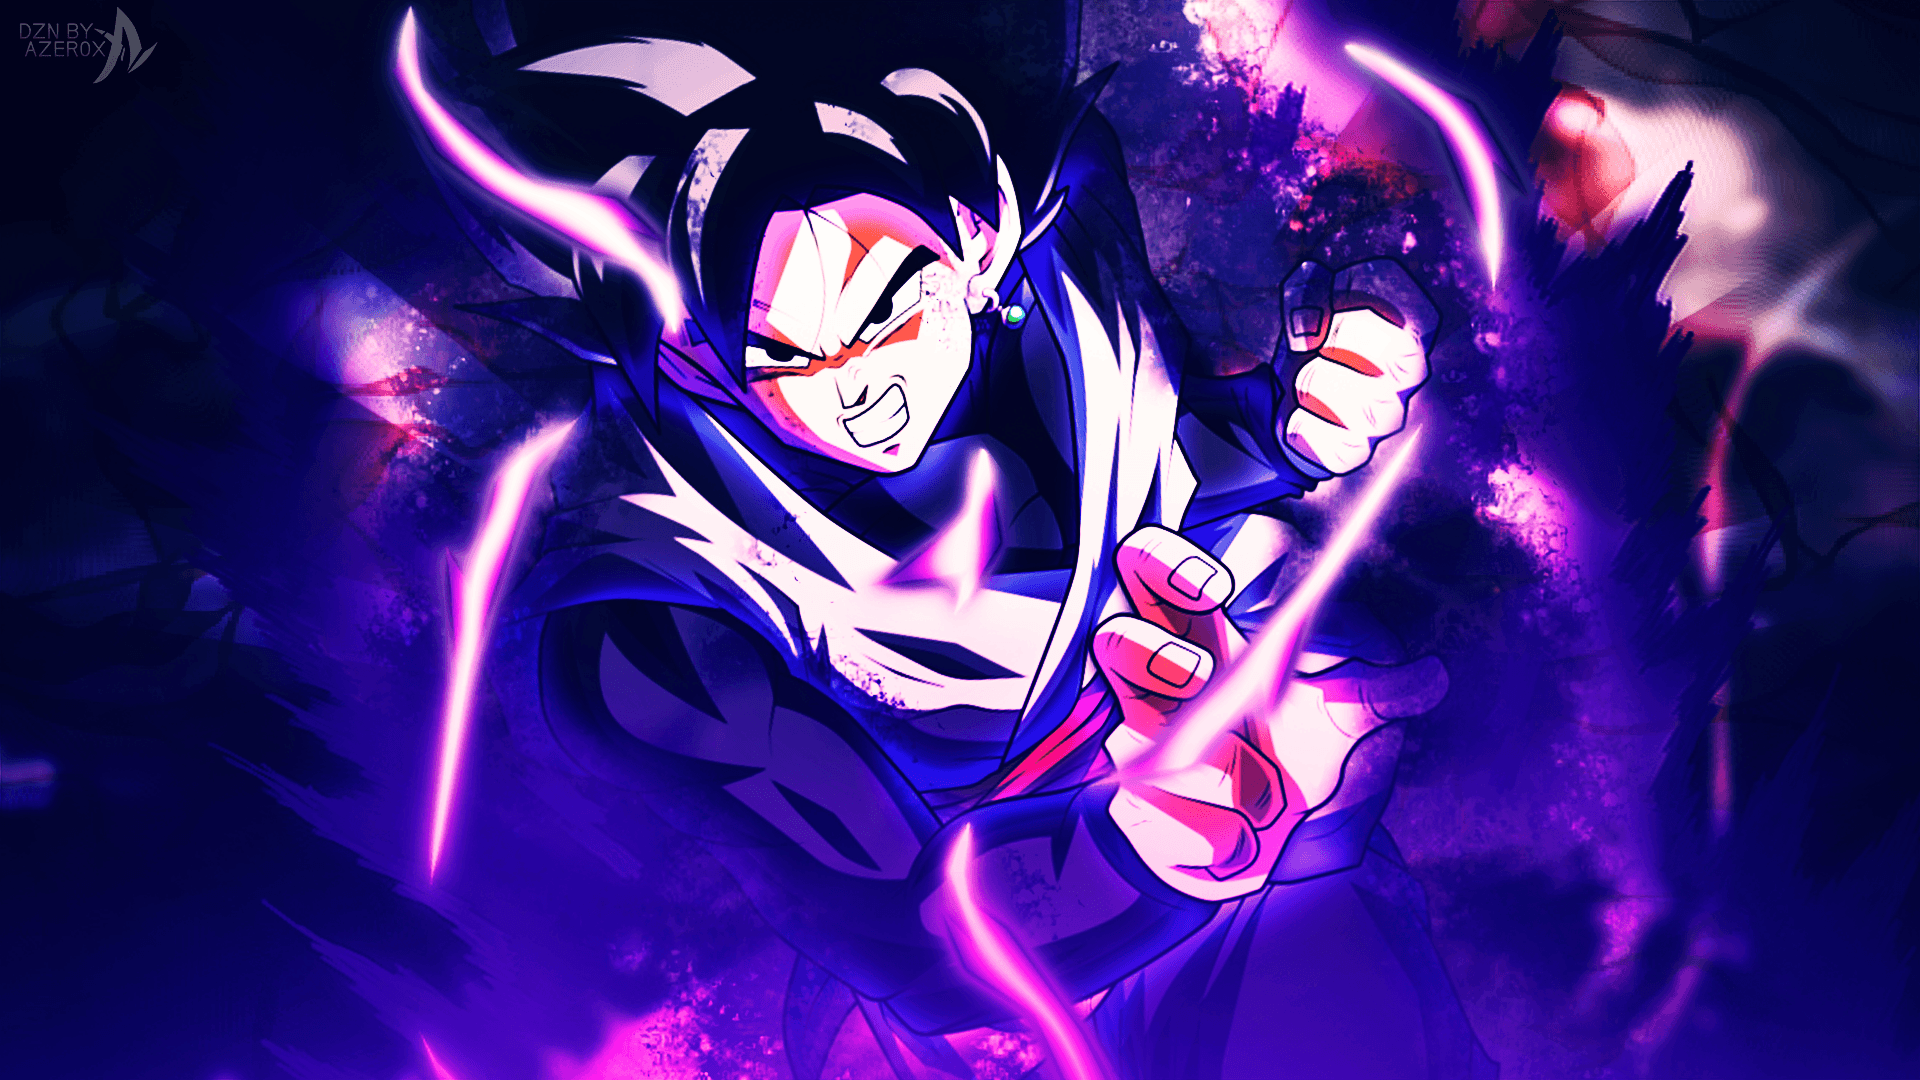 11 Black Goku Wallpaper 4k For Iphone Android And Desktop